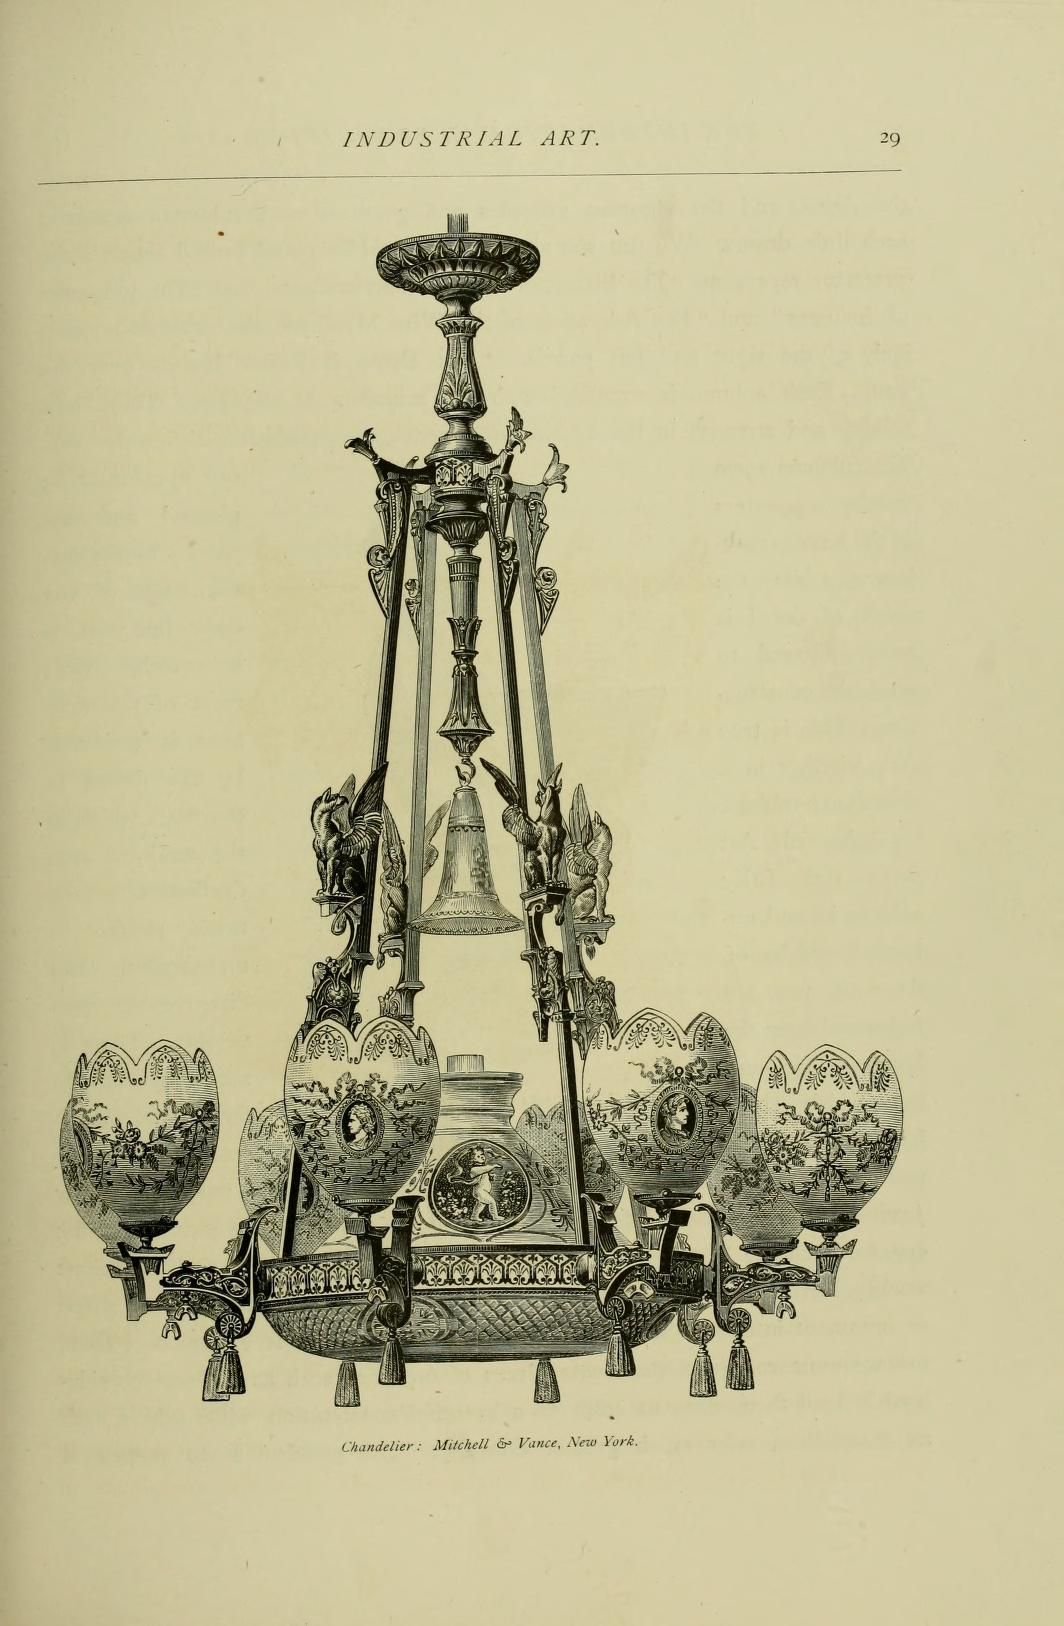 8 light Chandelier by Messrs. Mitchell & Vance of New York 1876